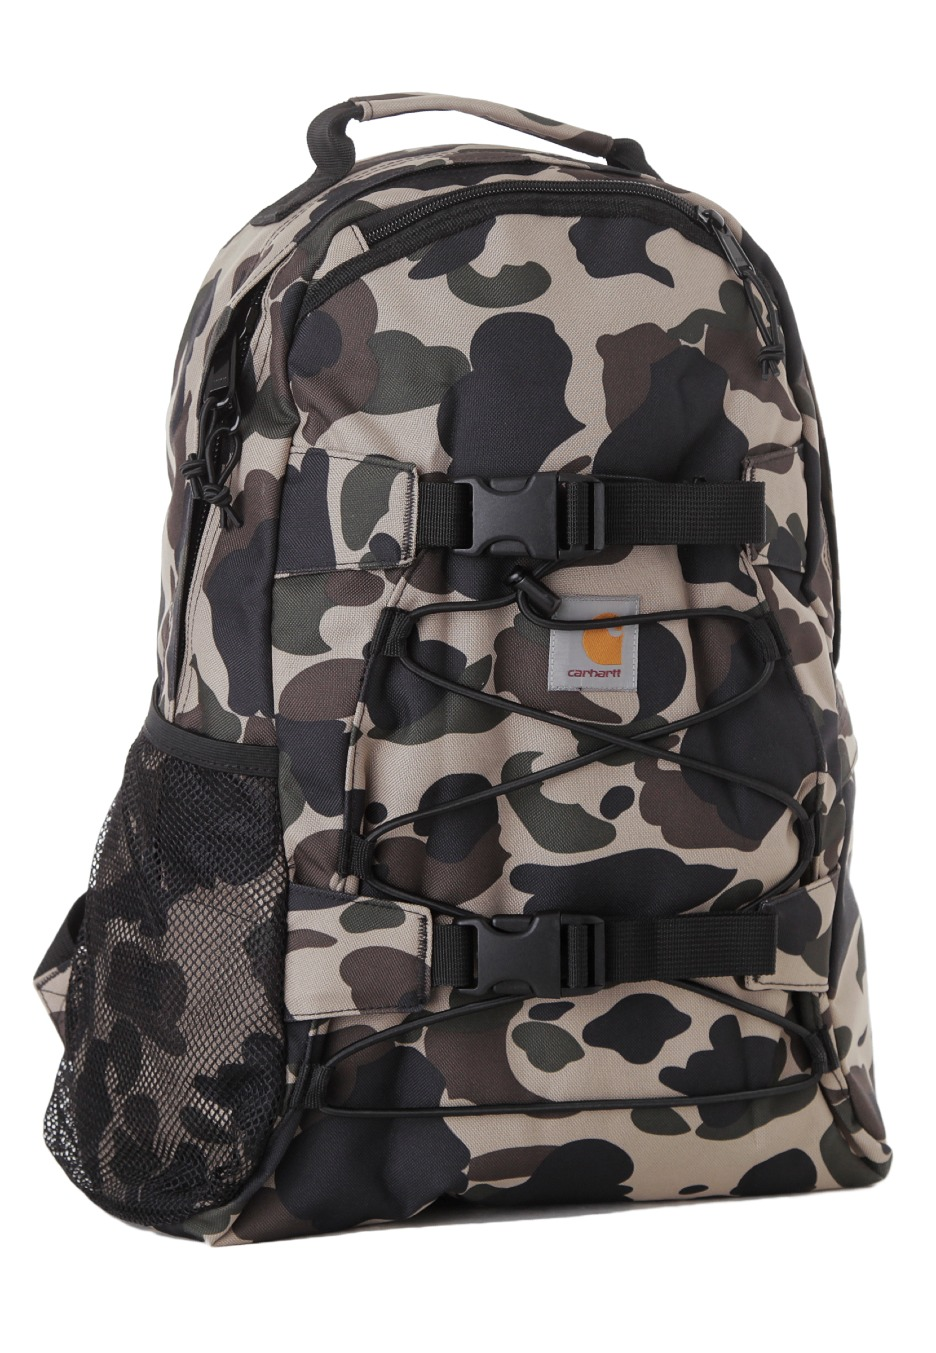 carhartt wip kickflip camo duck sac a dos boutique streetwear fr. Black Bedroom Furniture Sets. Home Design Ideas